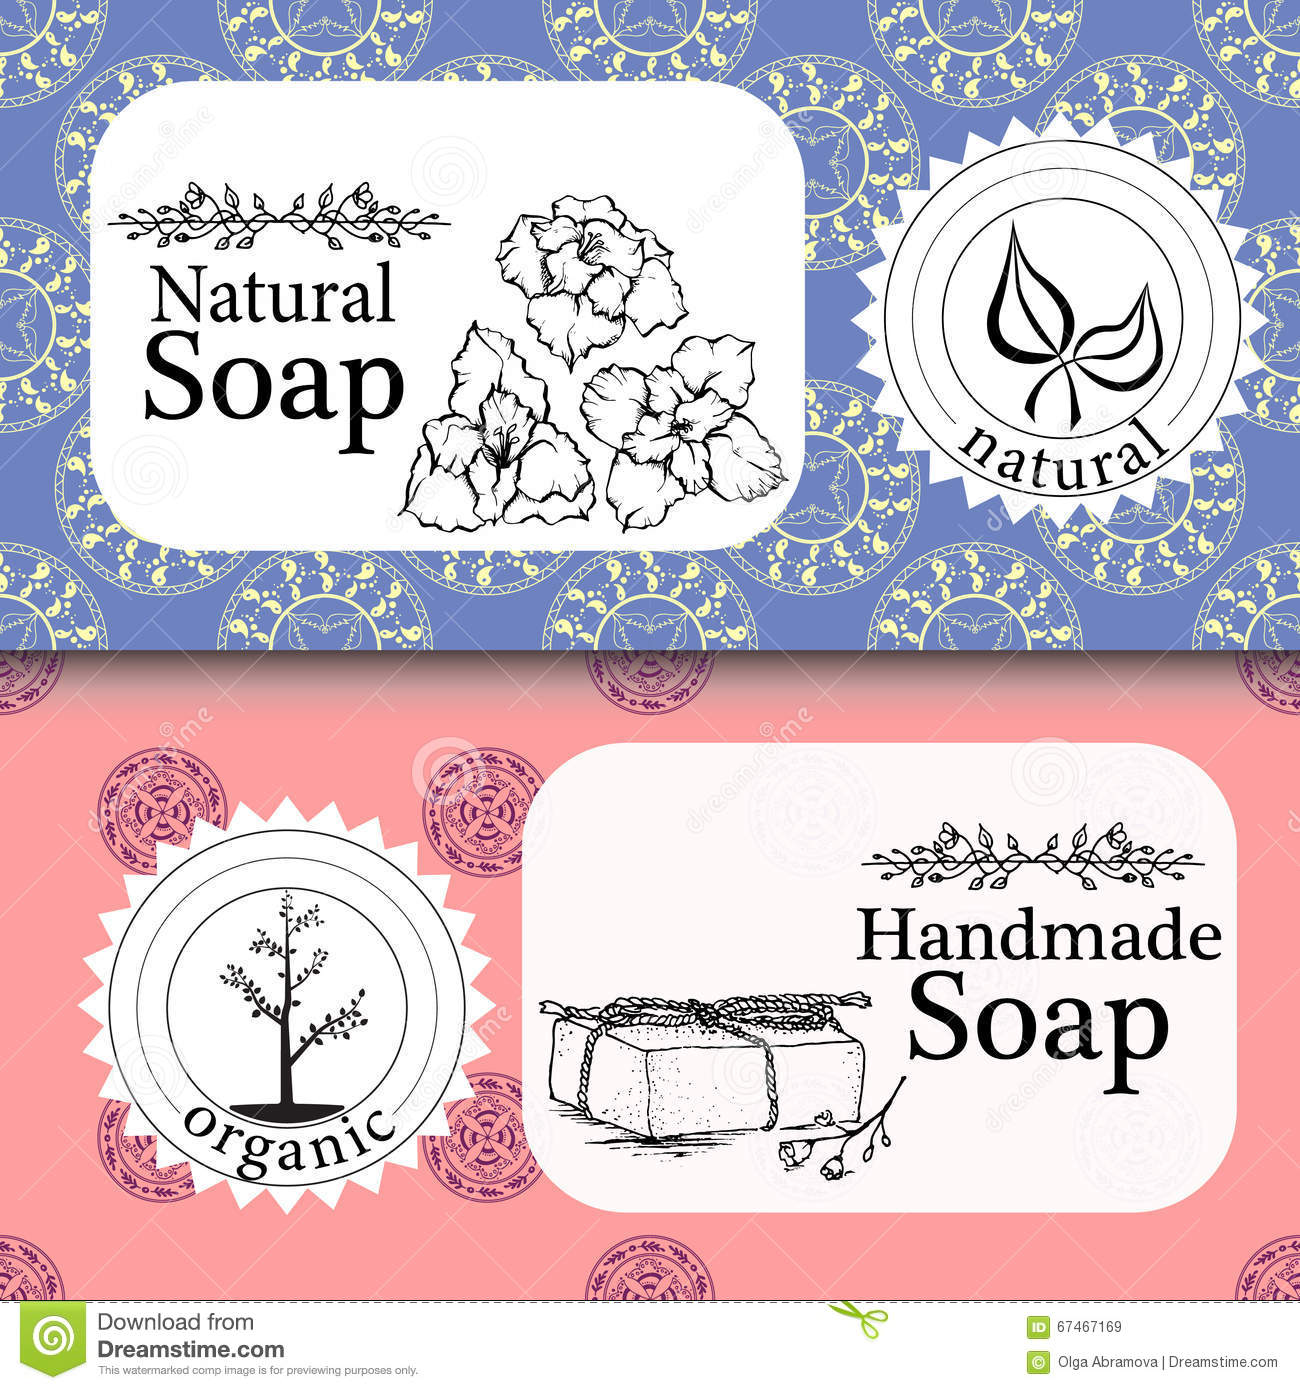 Superb image pertaining to free printable soap label templates